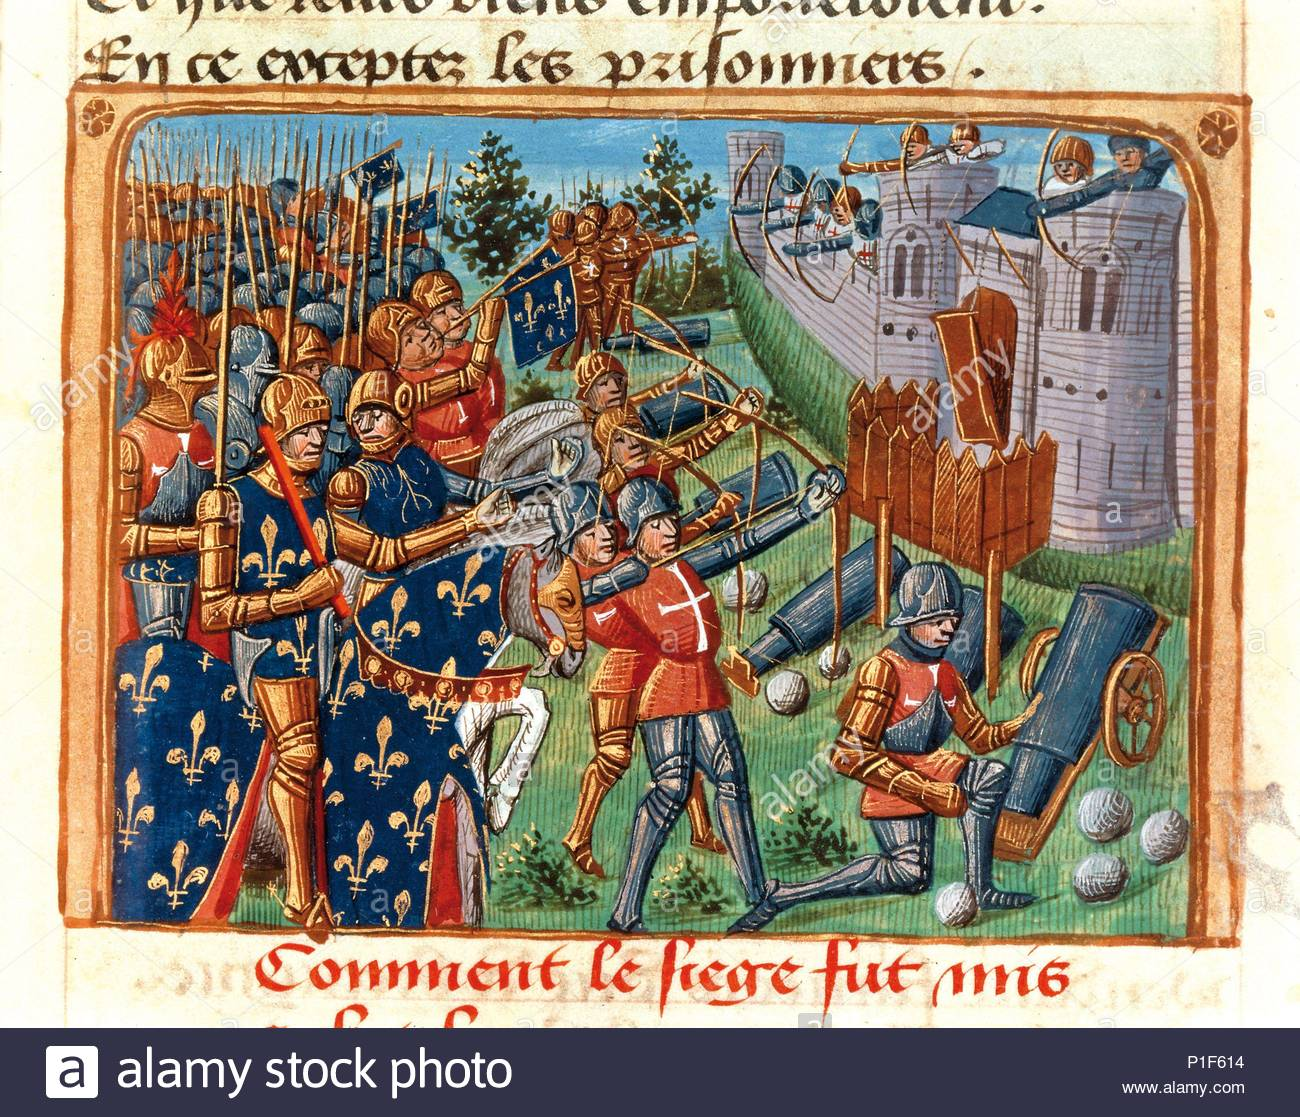 Surrender of Cherbourg to the French under the command of King Charles VII in 1450. From 'Vigiles du feu roi Charles septième'. Illuminated manuscript; France; 15th century. Location: Bibliotheque Nat., Coll. des Manuscripts, Paris, France. - Stock Image